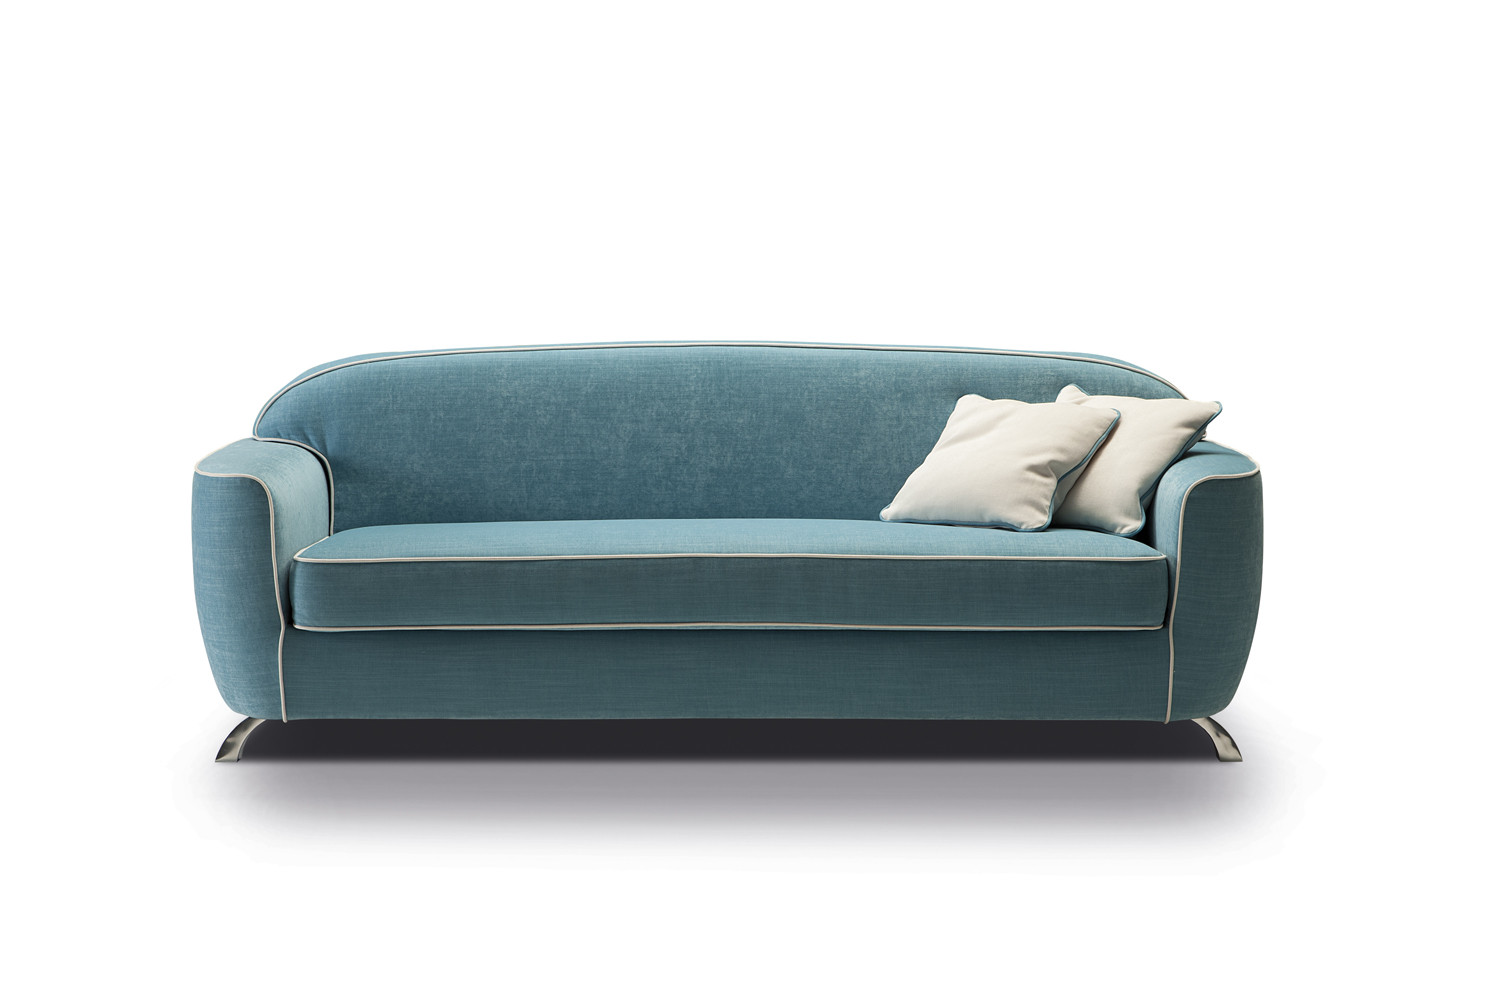 Charles vintage sofa with a 50s style for Sofa bed 50s